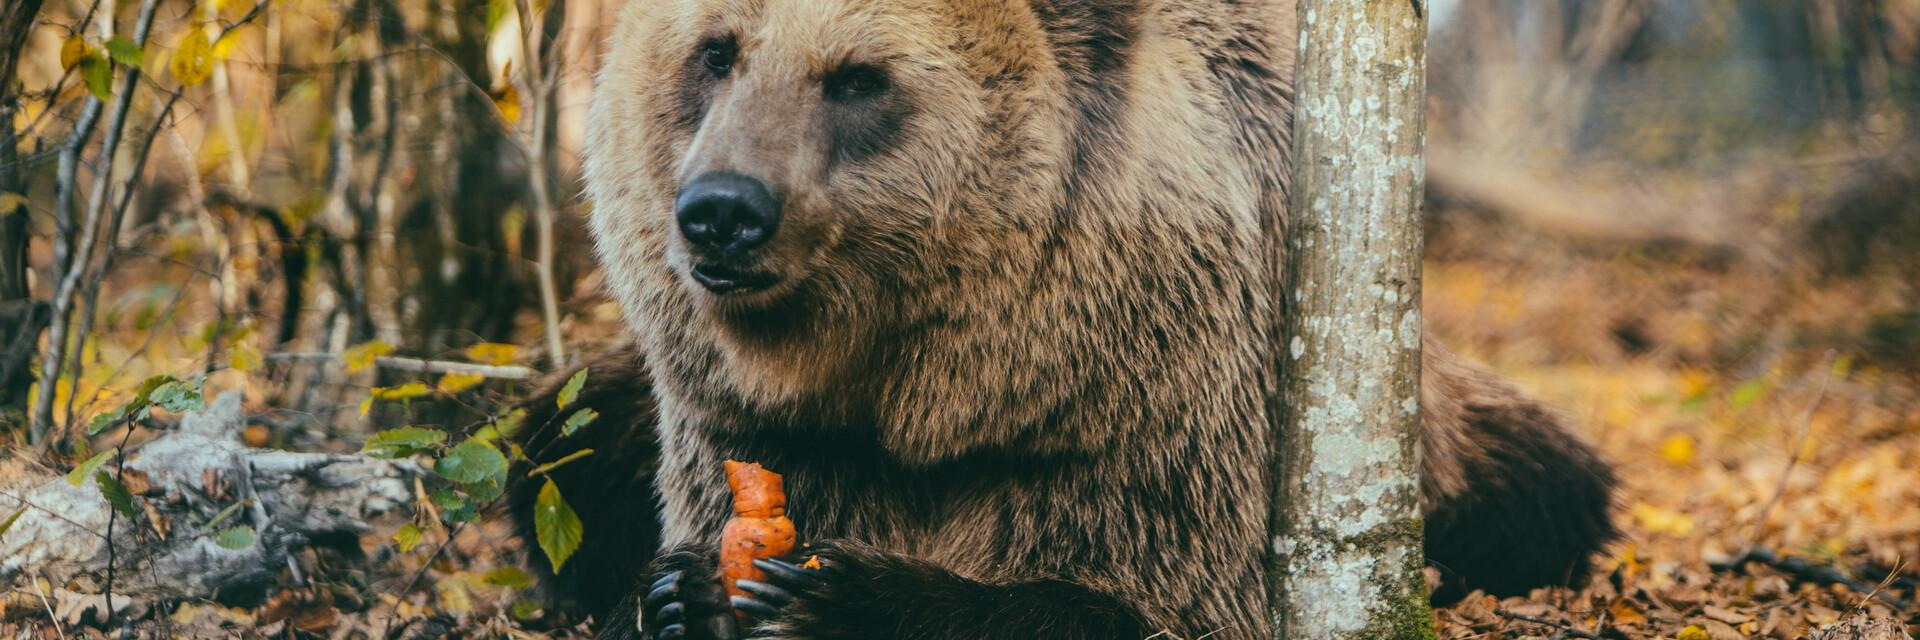 Support our bears in Domazhyr